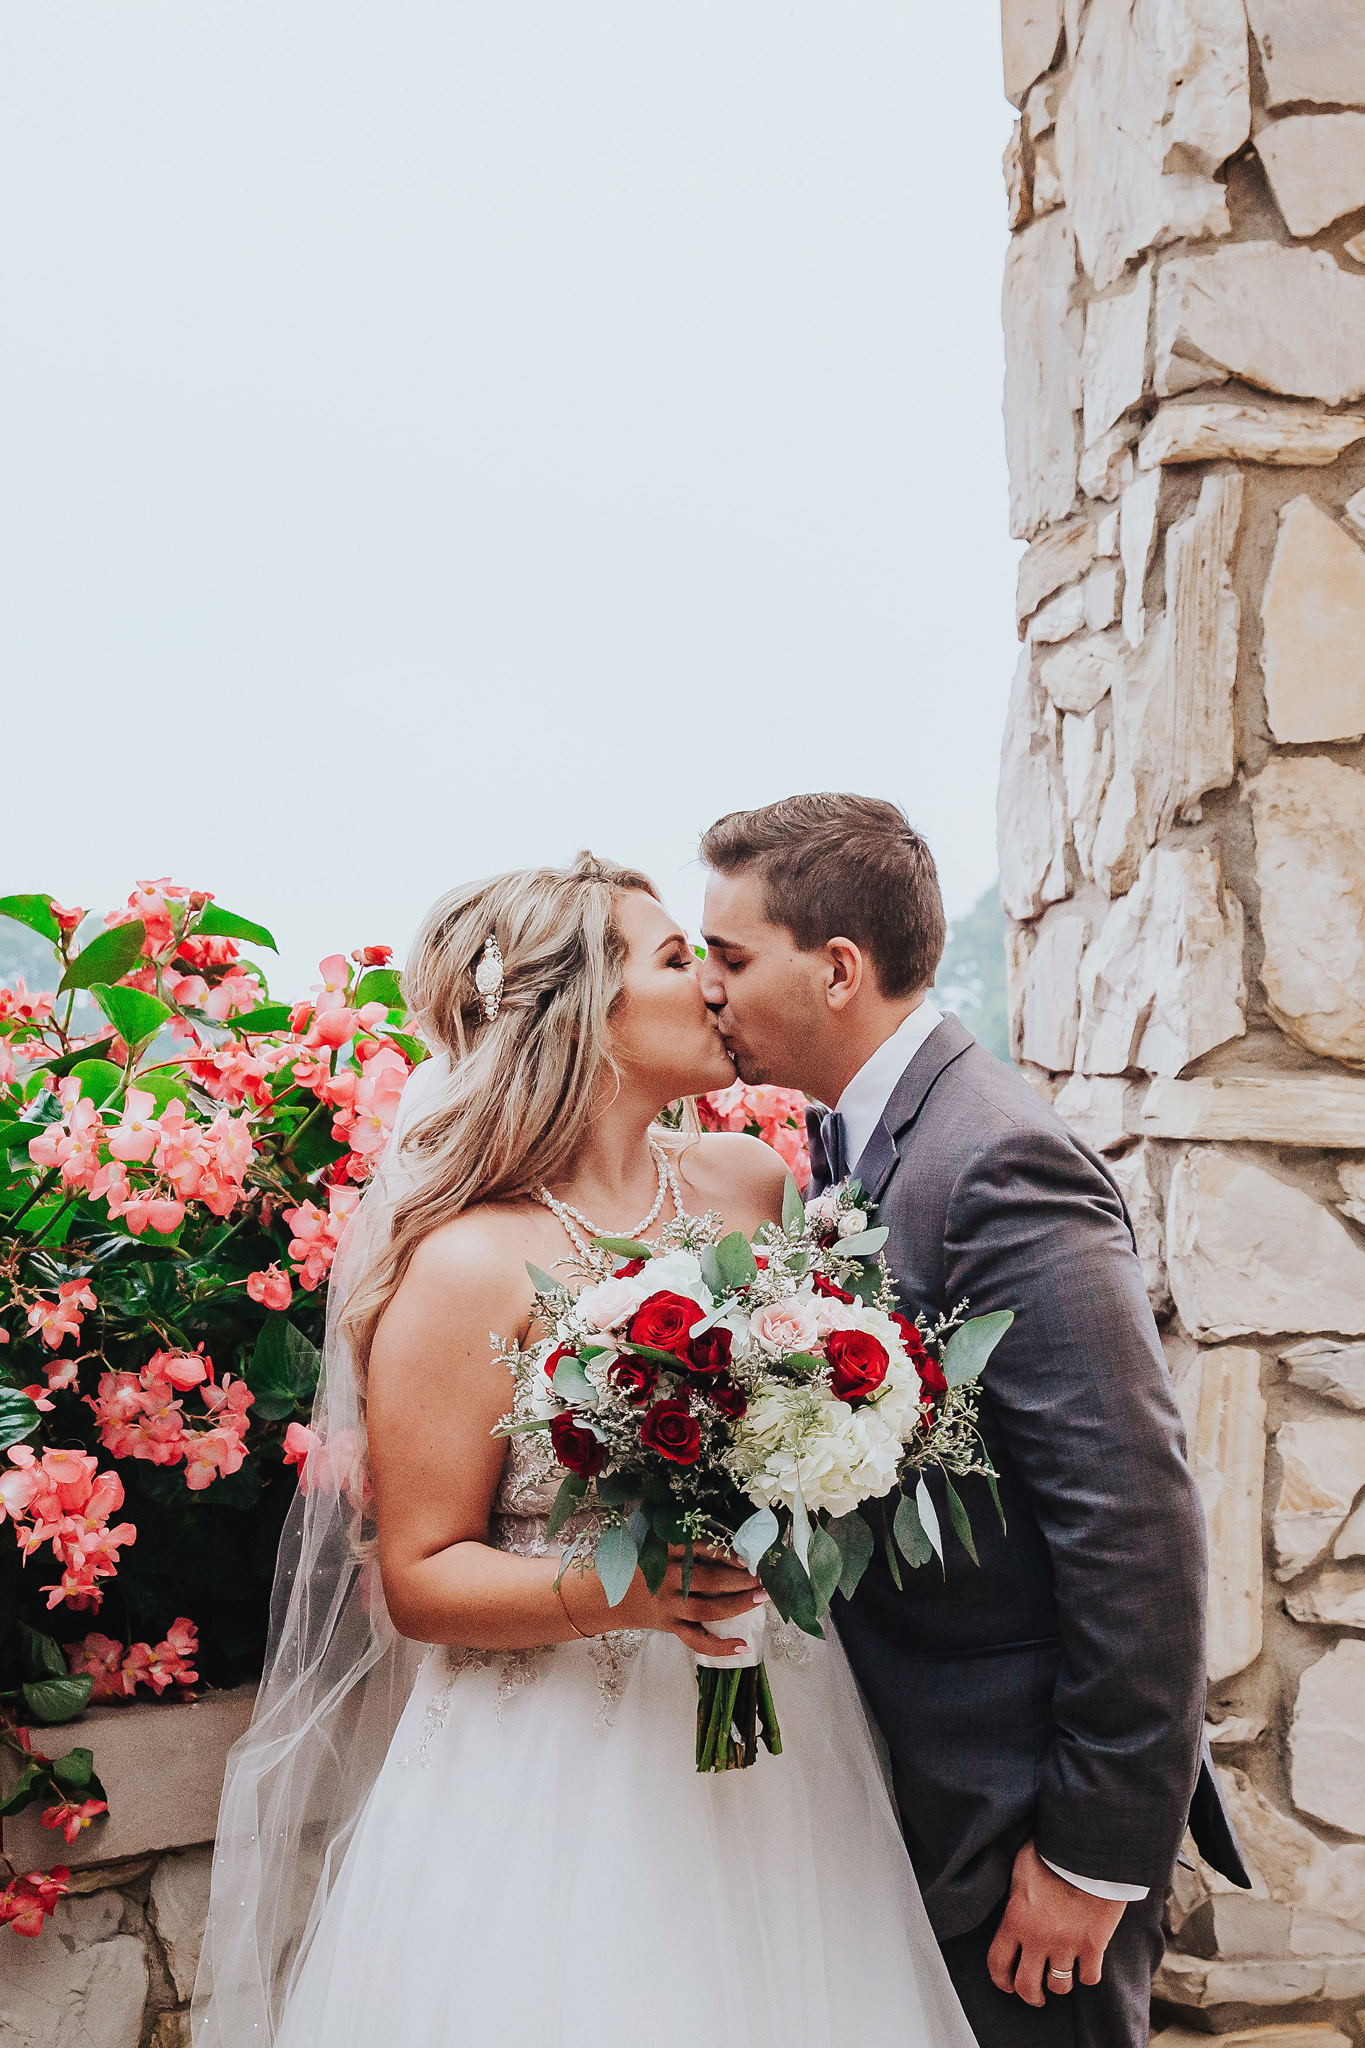 Endlessly Photography   Brandtonies Wedding   October 14th, 2017